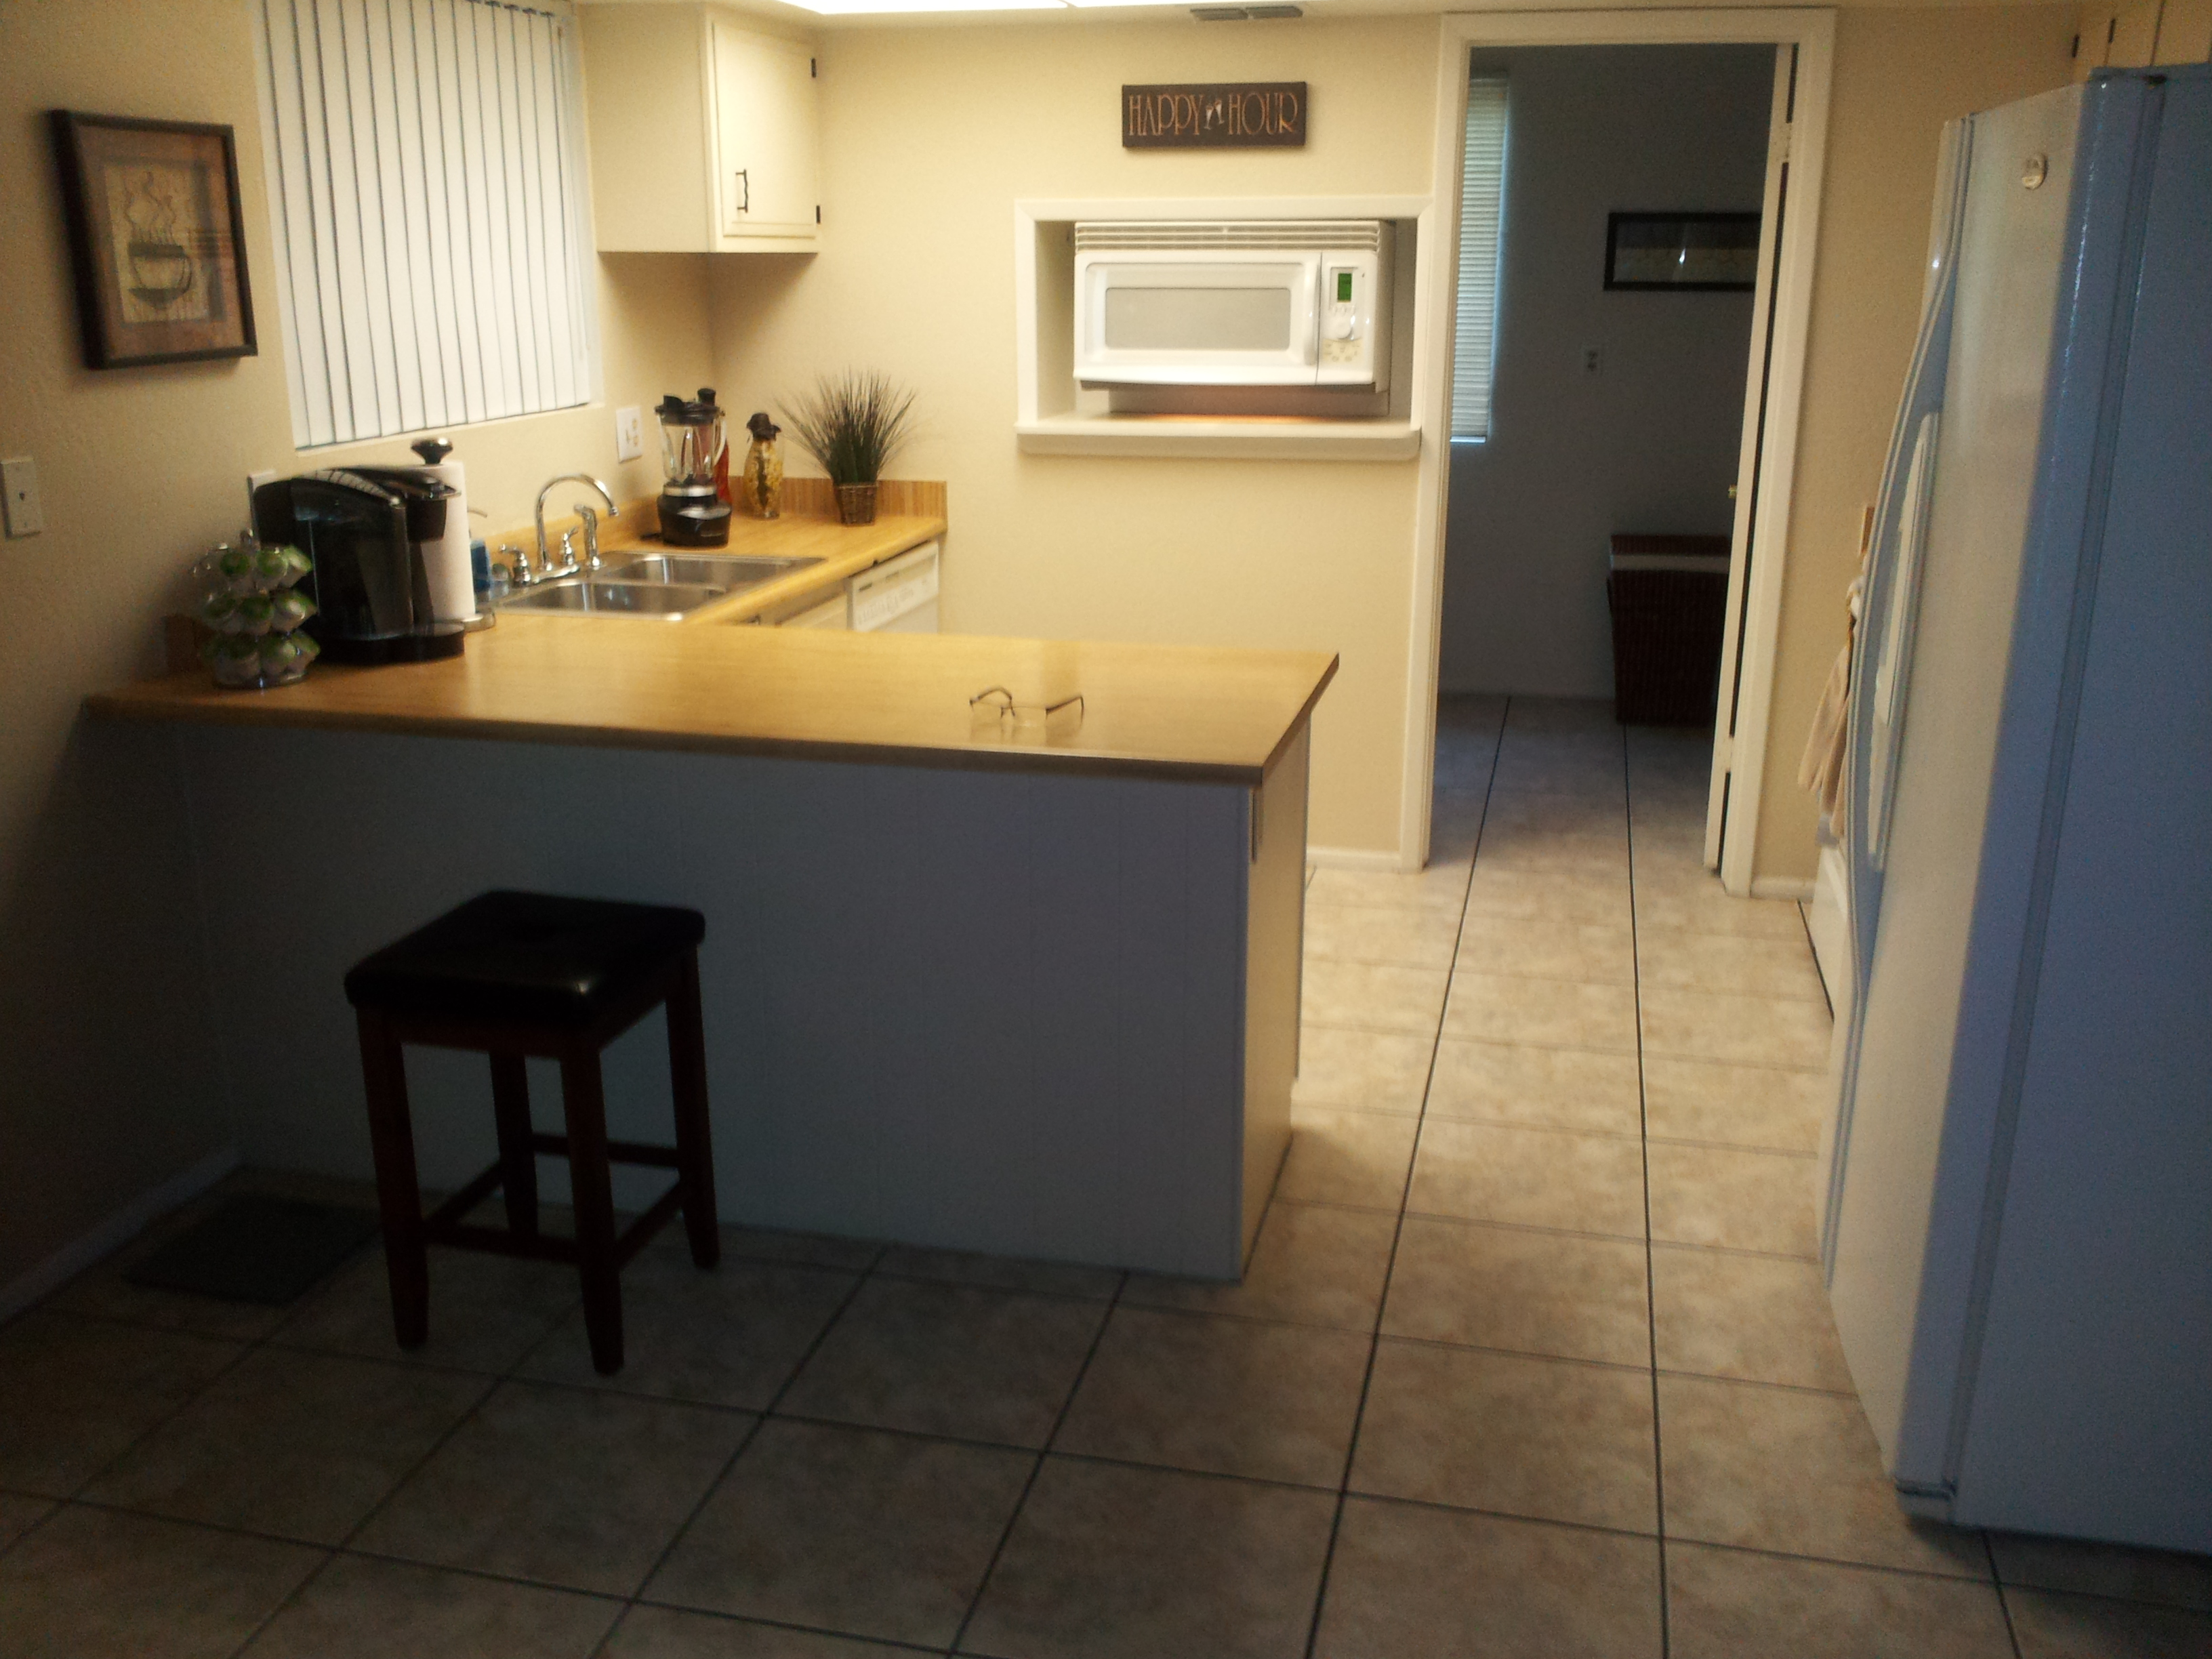 KITCHEN REMODEL (BEFORE)